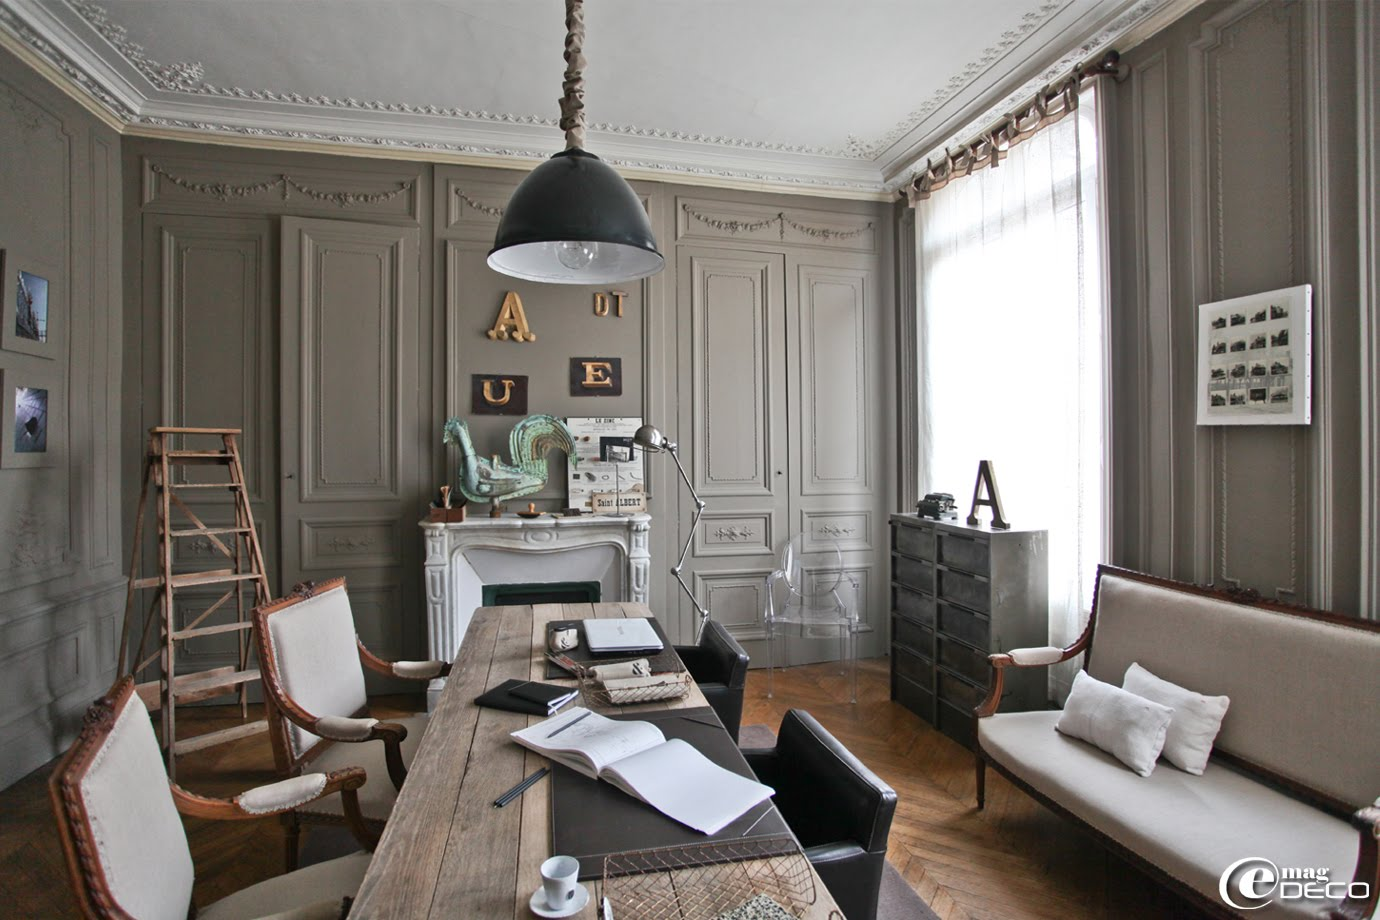 une maison de passionn s pr s de rouen e magdeco. Black Bedroom Furniture Sets. Home Design Ideas